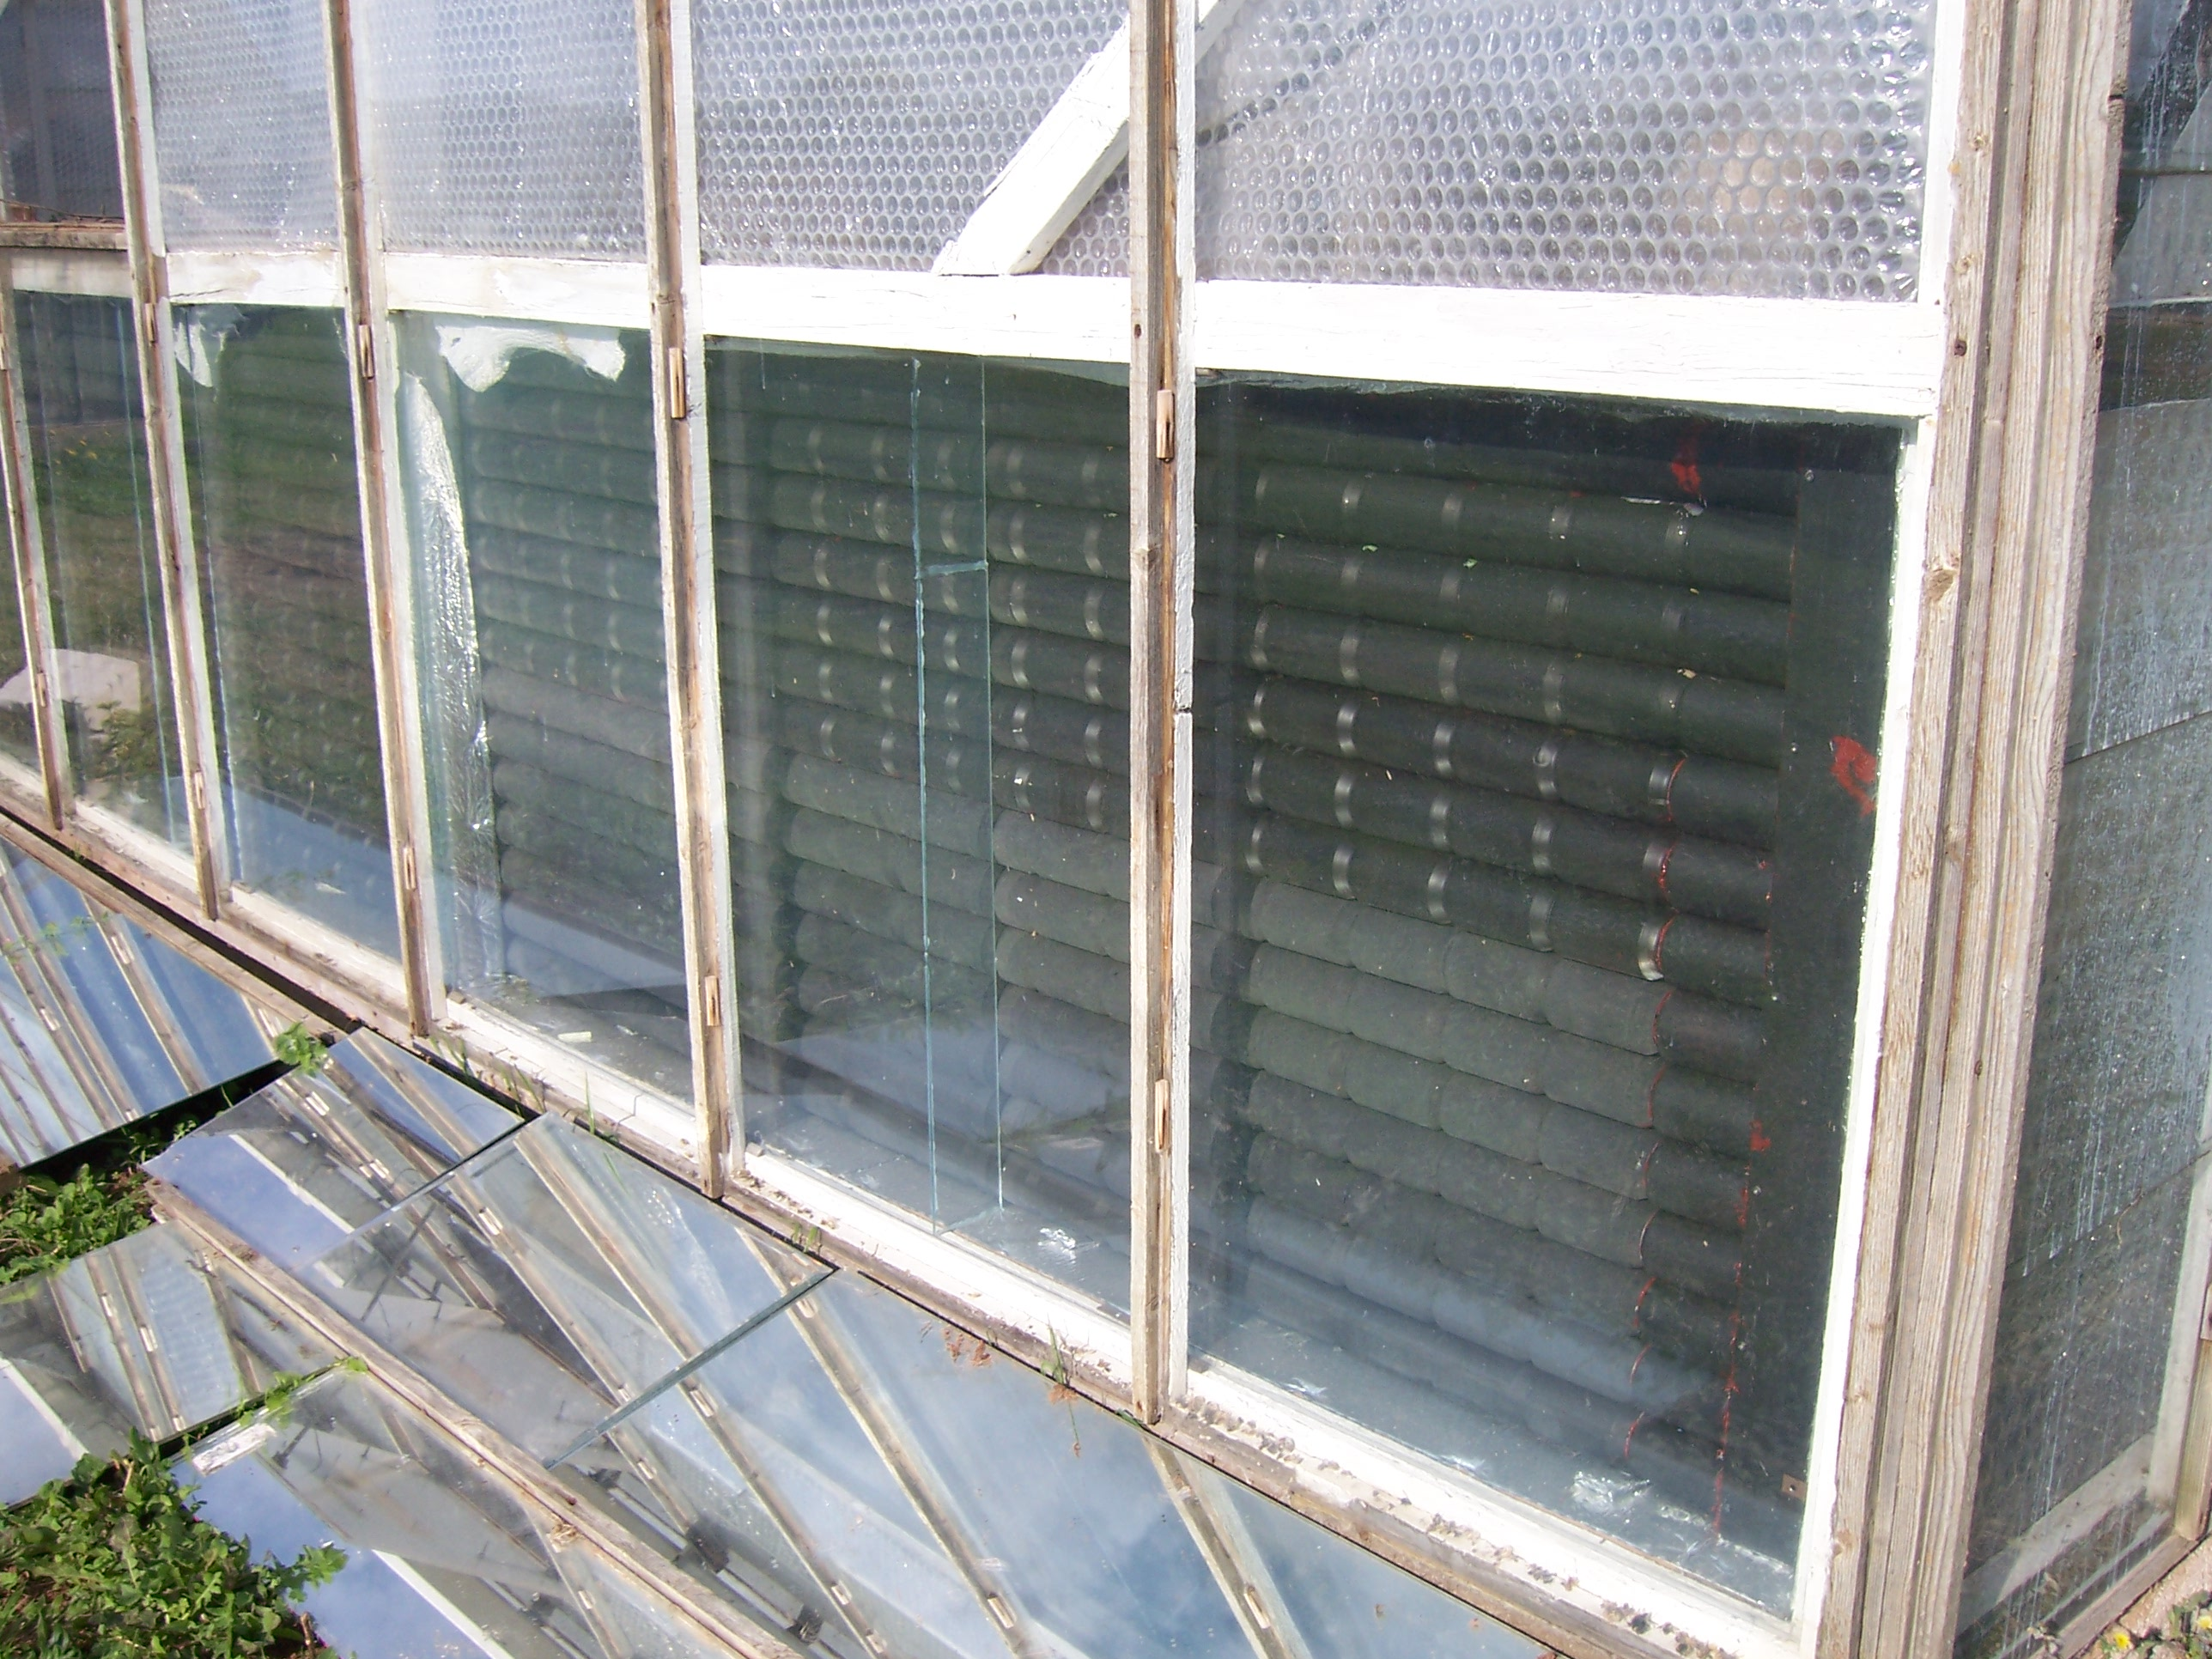 Diy Solar Panels Soda Cans File A Solar Greenhouse Heater Made Of Pop Cans